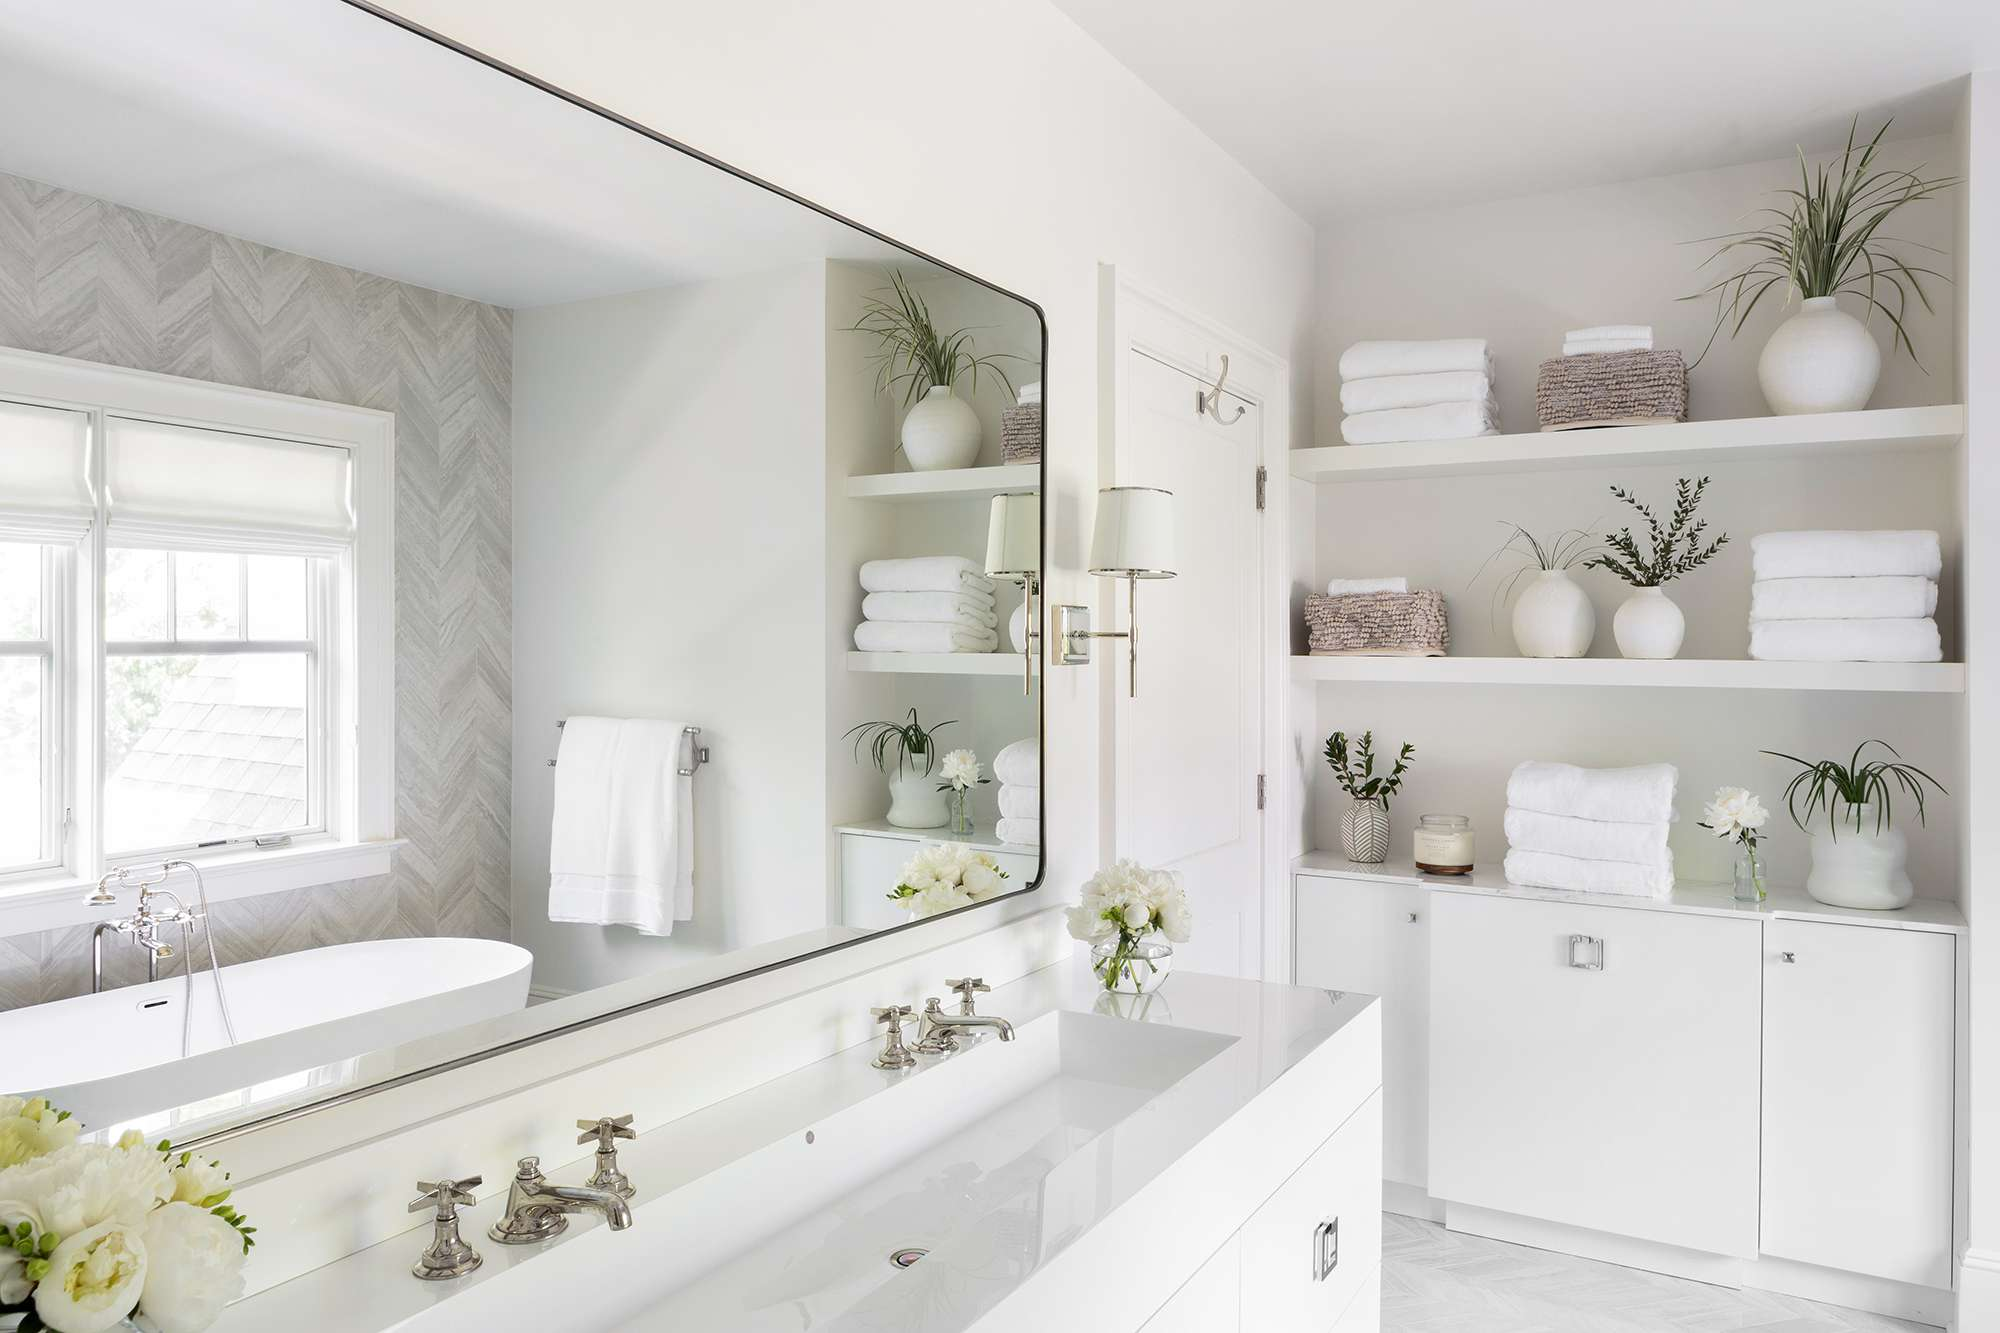 new jersey home tour - master bathroom